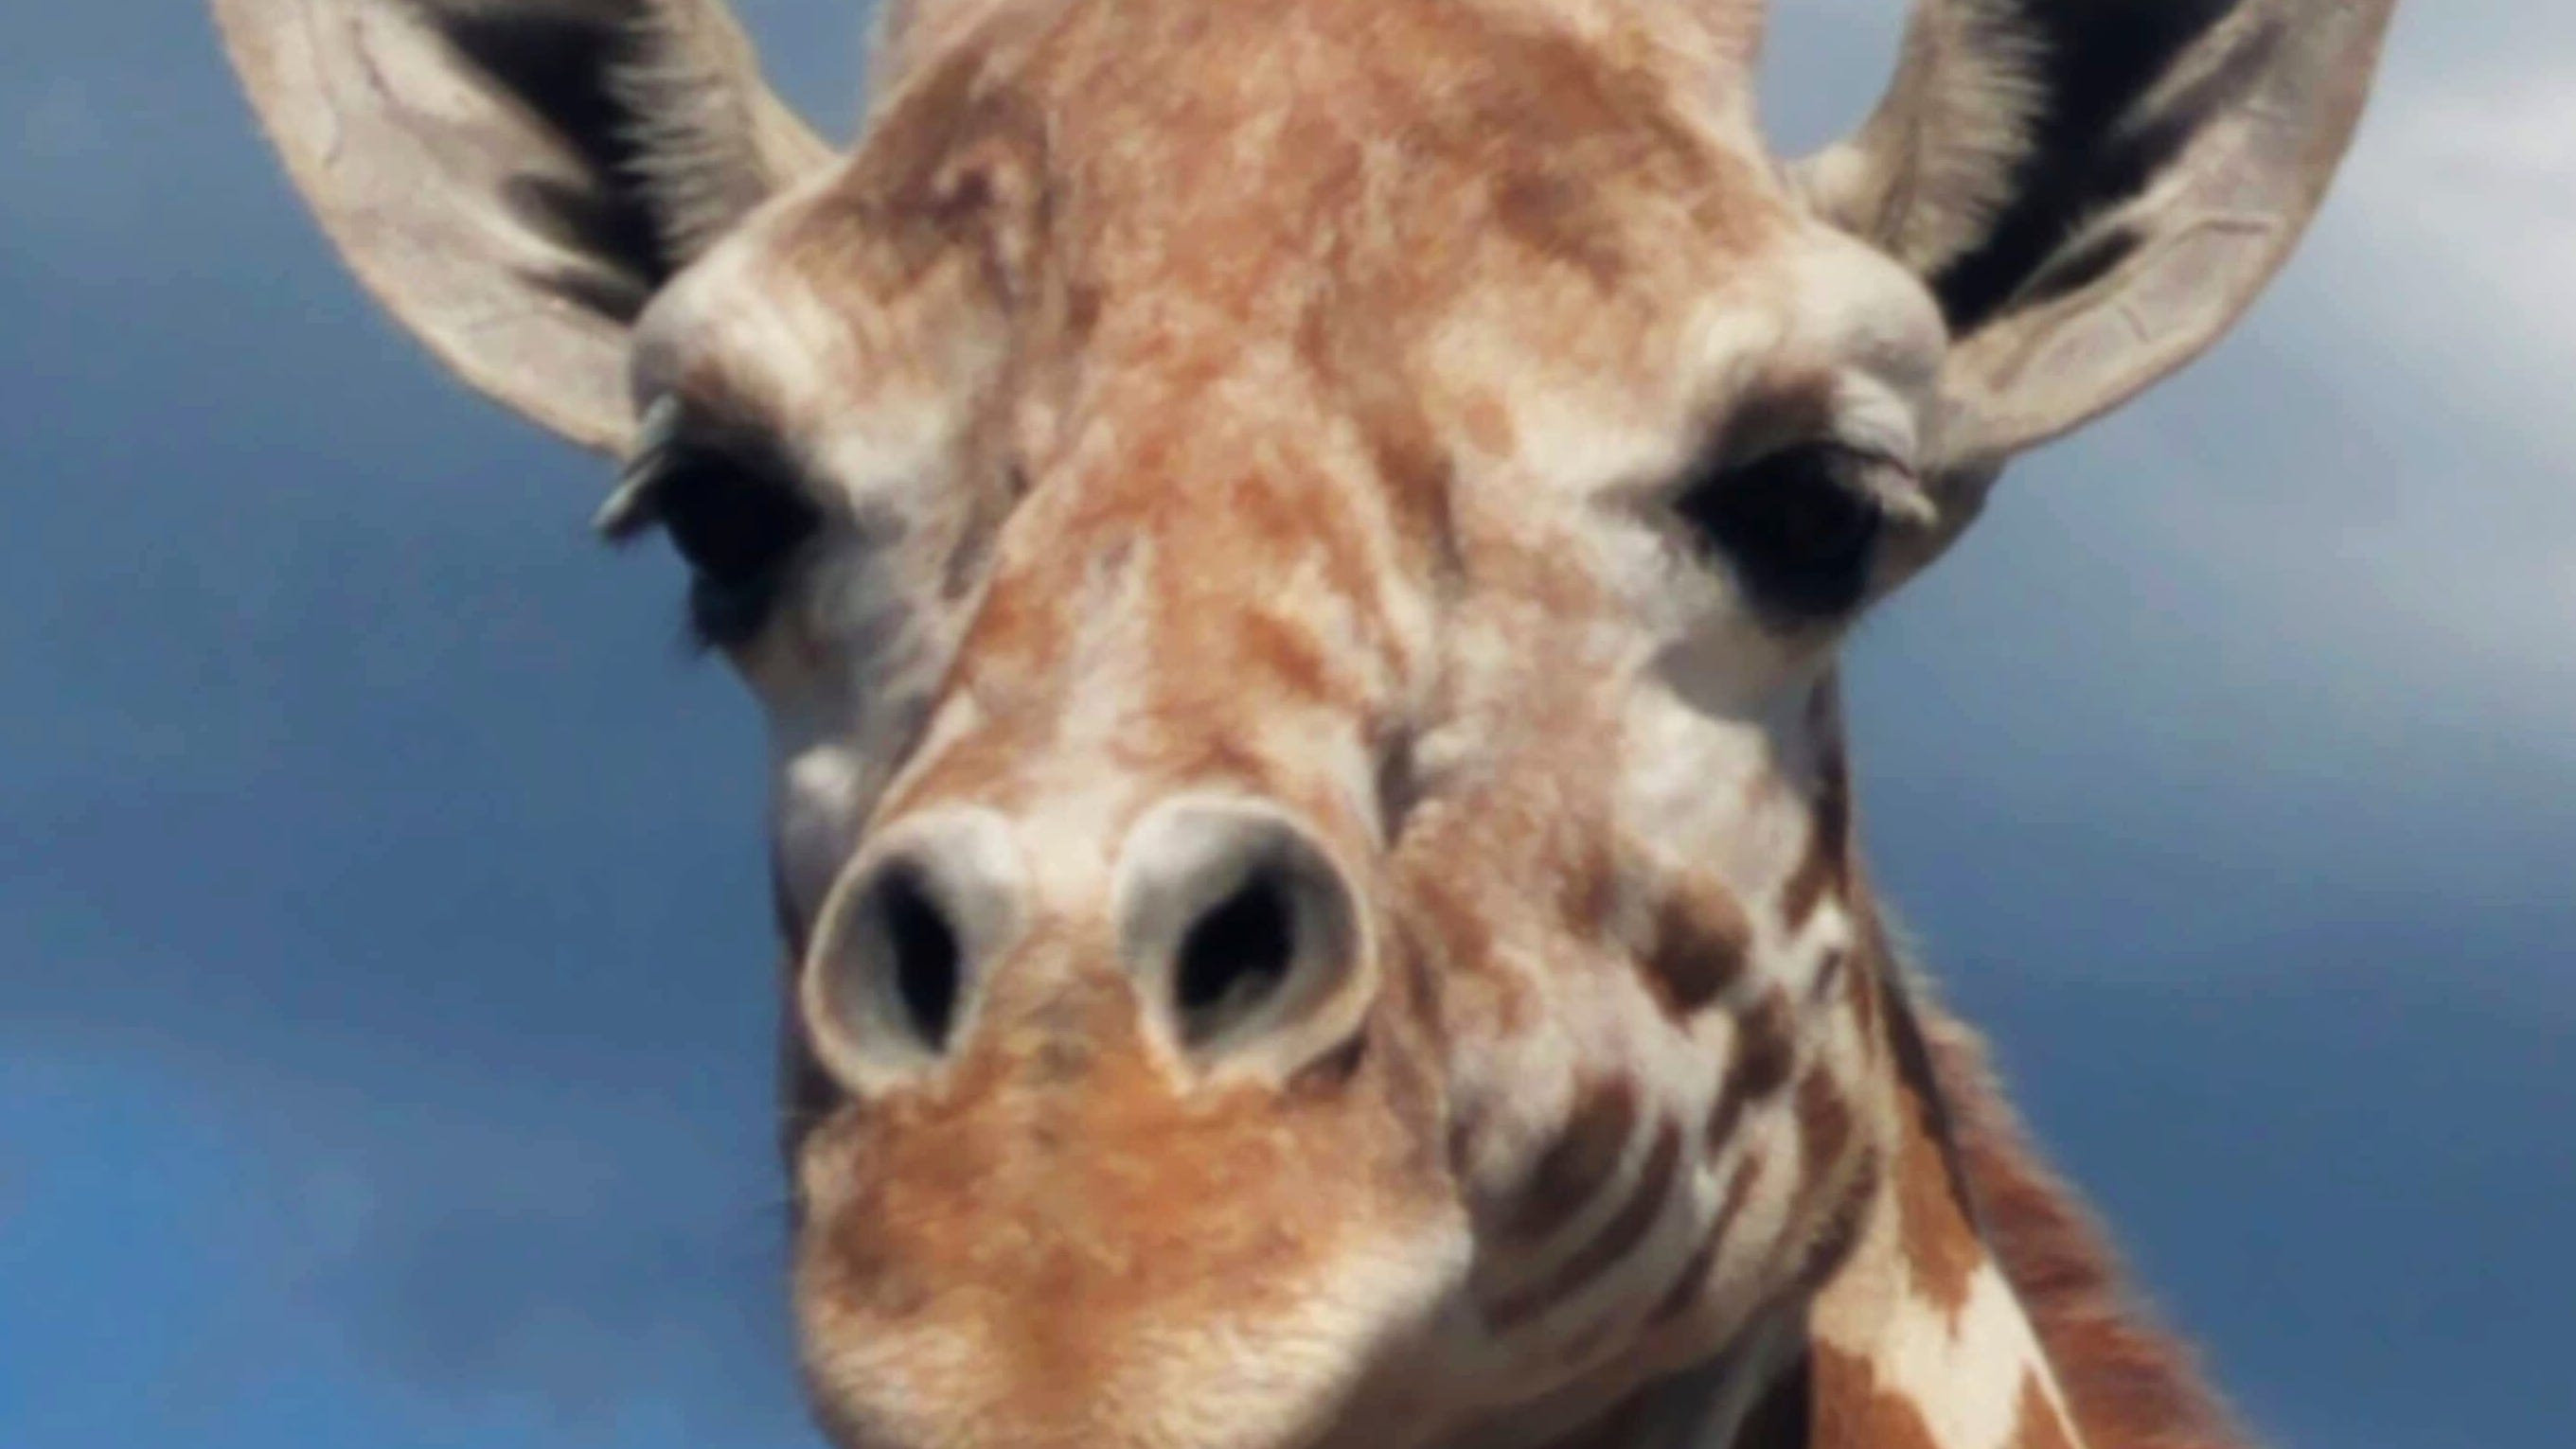 April the giraffe is ready to be a mama again at any moment and we're riveted